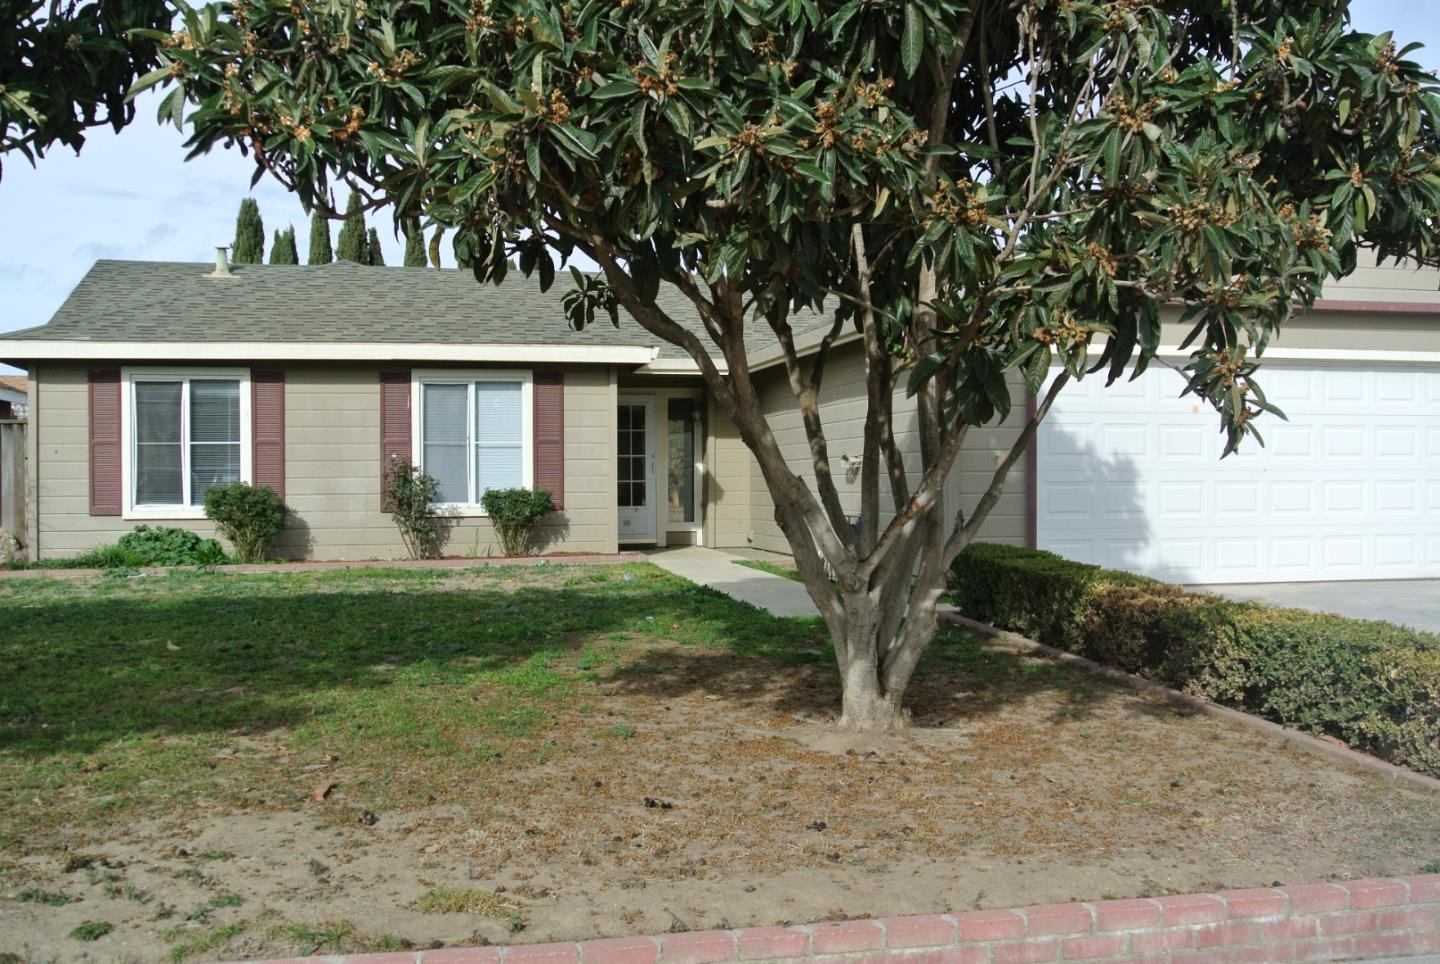 1212 Morris Ave Greenfield Ca 93927 5 Beds 2 Baths Sold